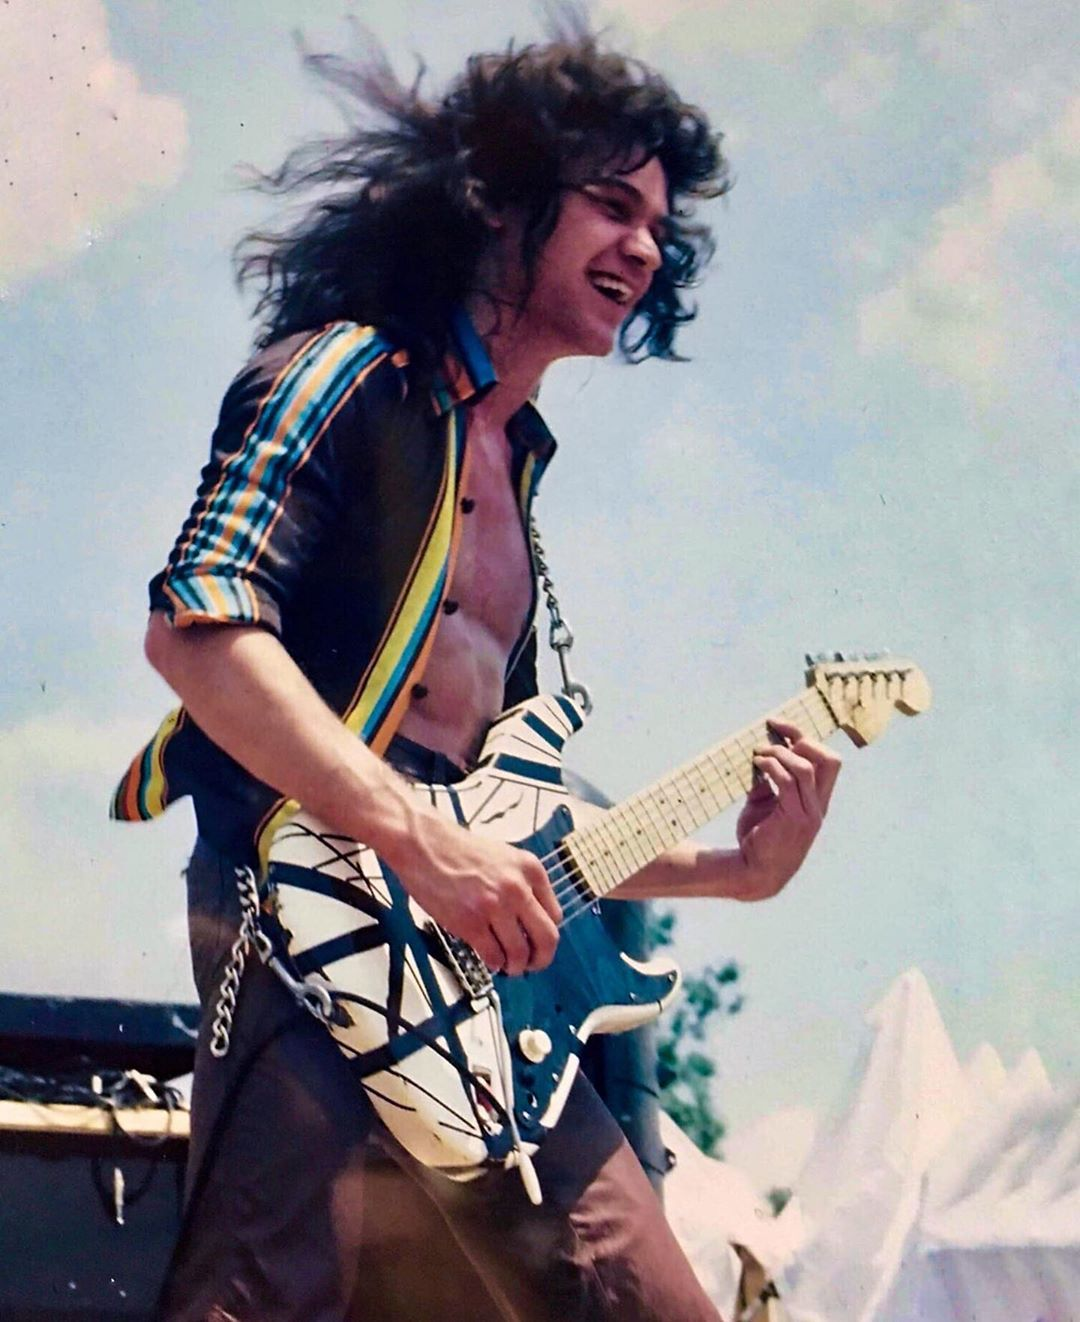 Eddie Van Halen By Wally T On Van Halen And More In 2020 Van Halen Van Halen 5150